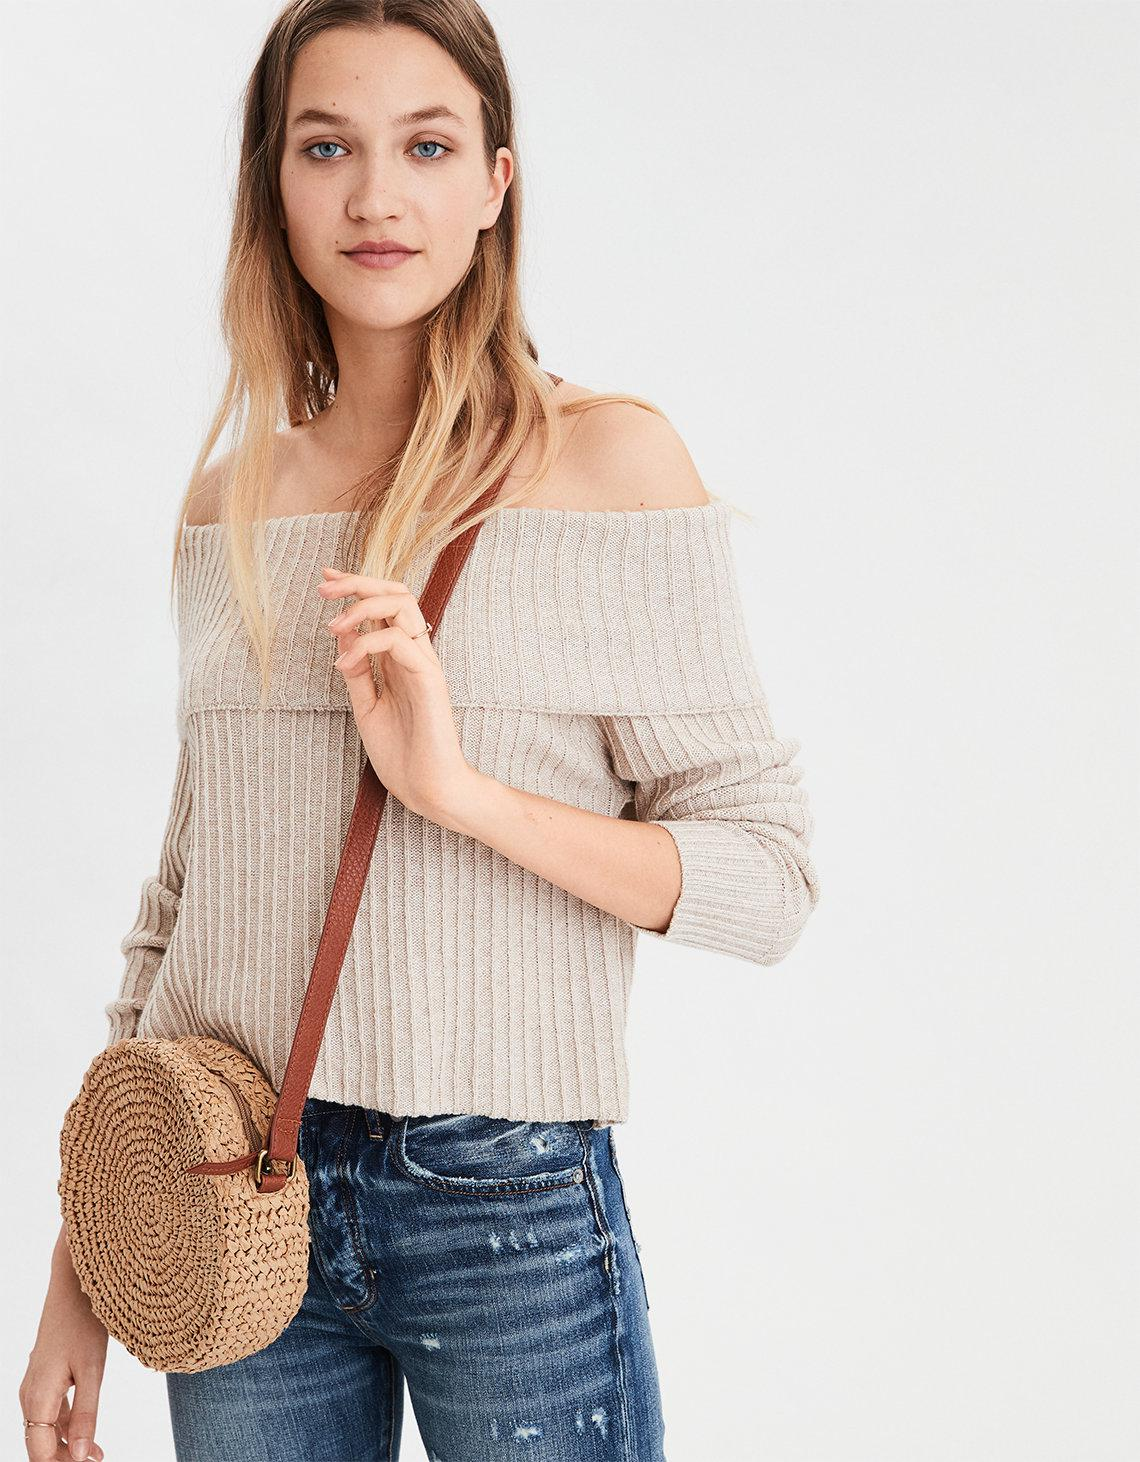 c73ddf8db13 American Eagle Ae Wide Rib Off-the-shoulder Sweater in Natural - Lyst